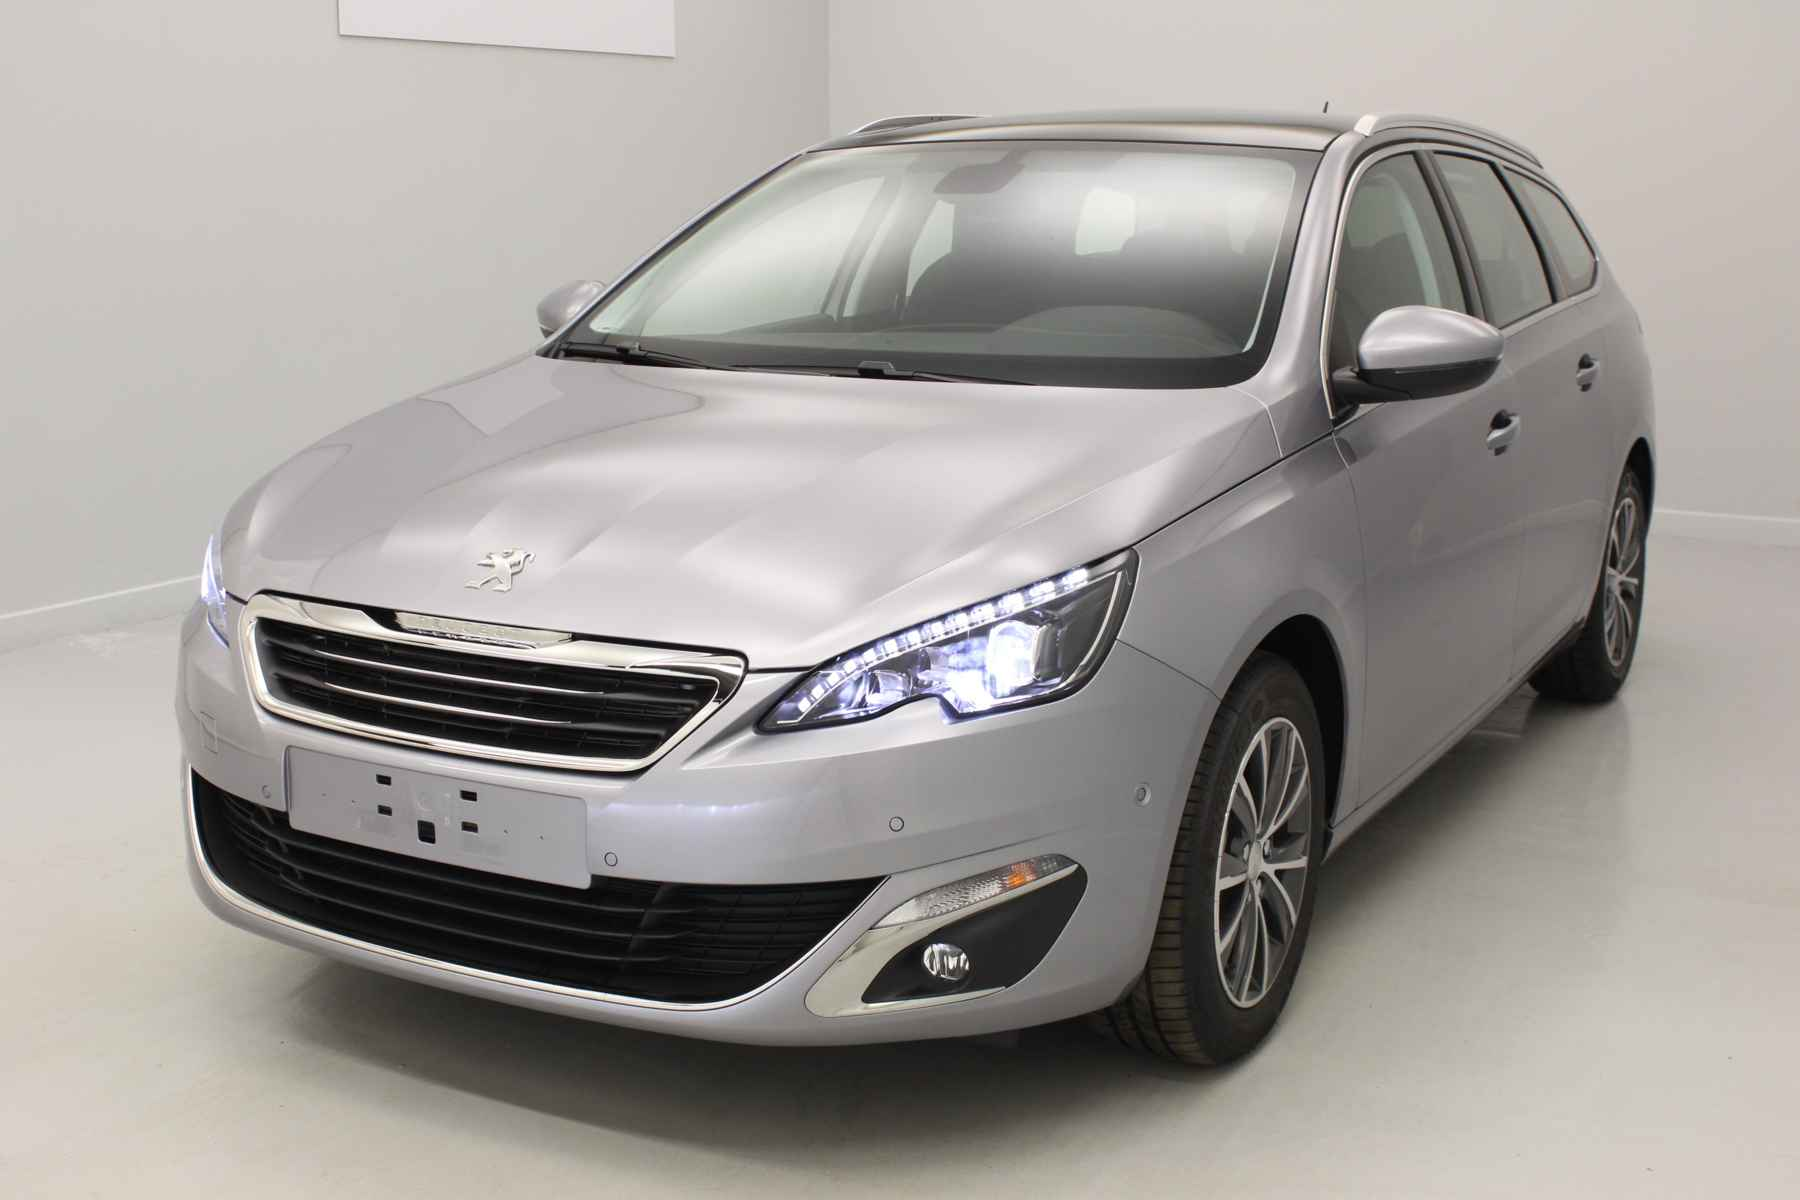 PEUGEOT 308 SW 1.6 BlueHDi 120ch S&S BVM6 Allure Gris Artense + Toit panoramique + Sièges avant chauffants avec options